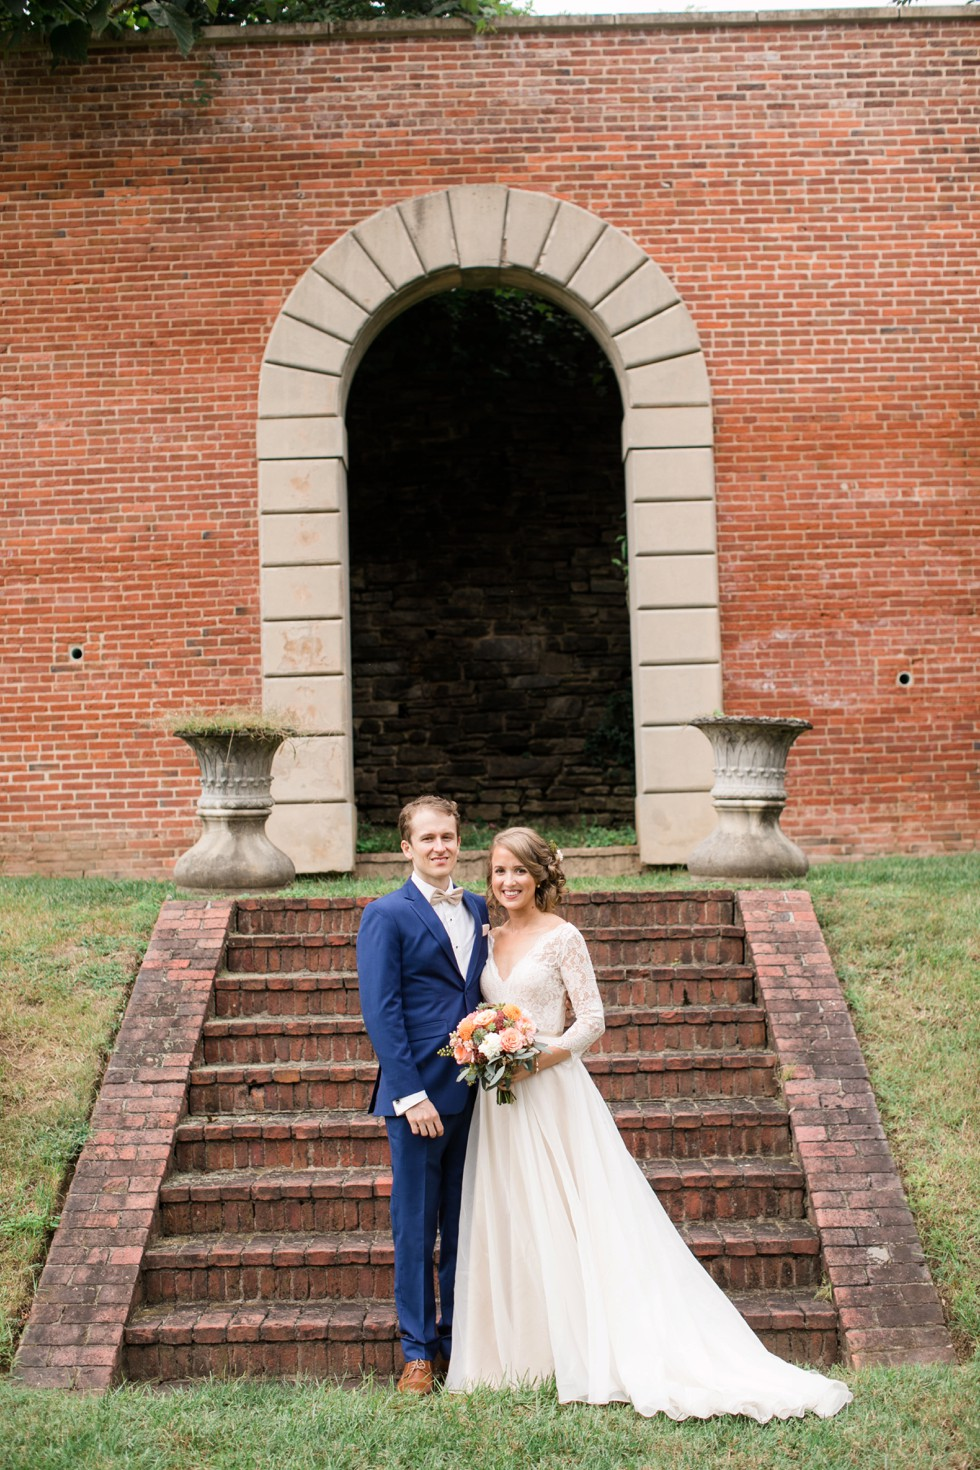 Evergreen Museum & Library wedding at JHU events